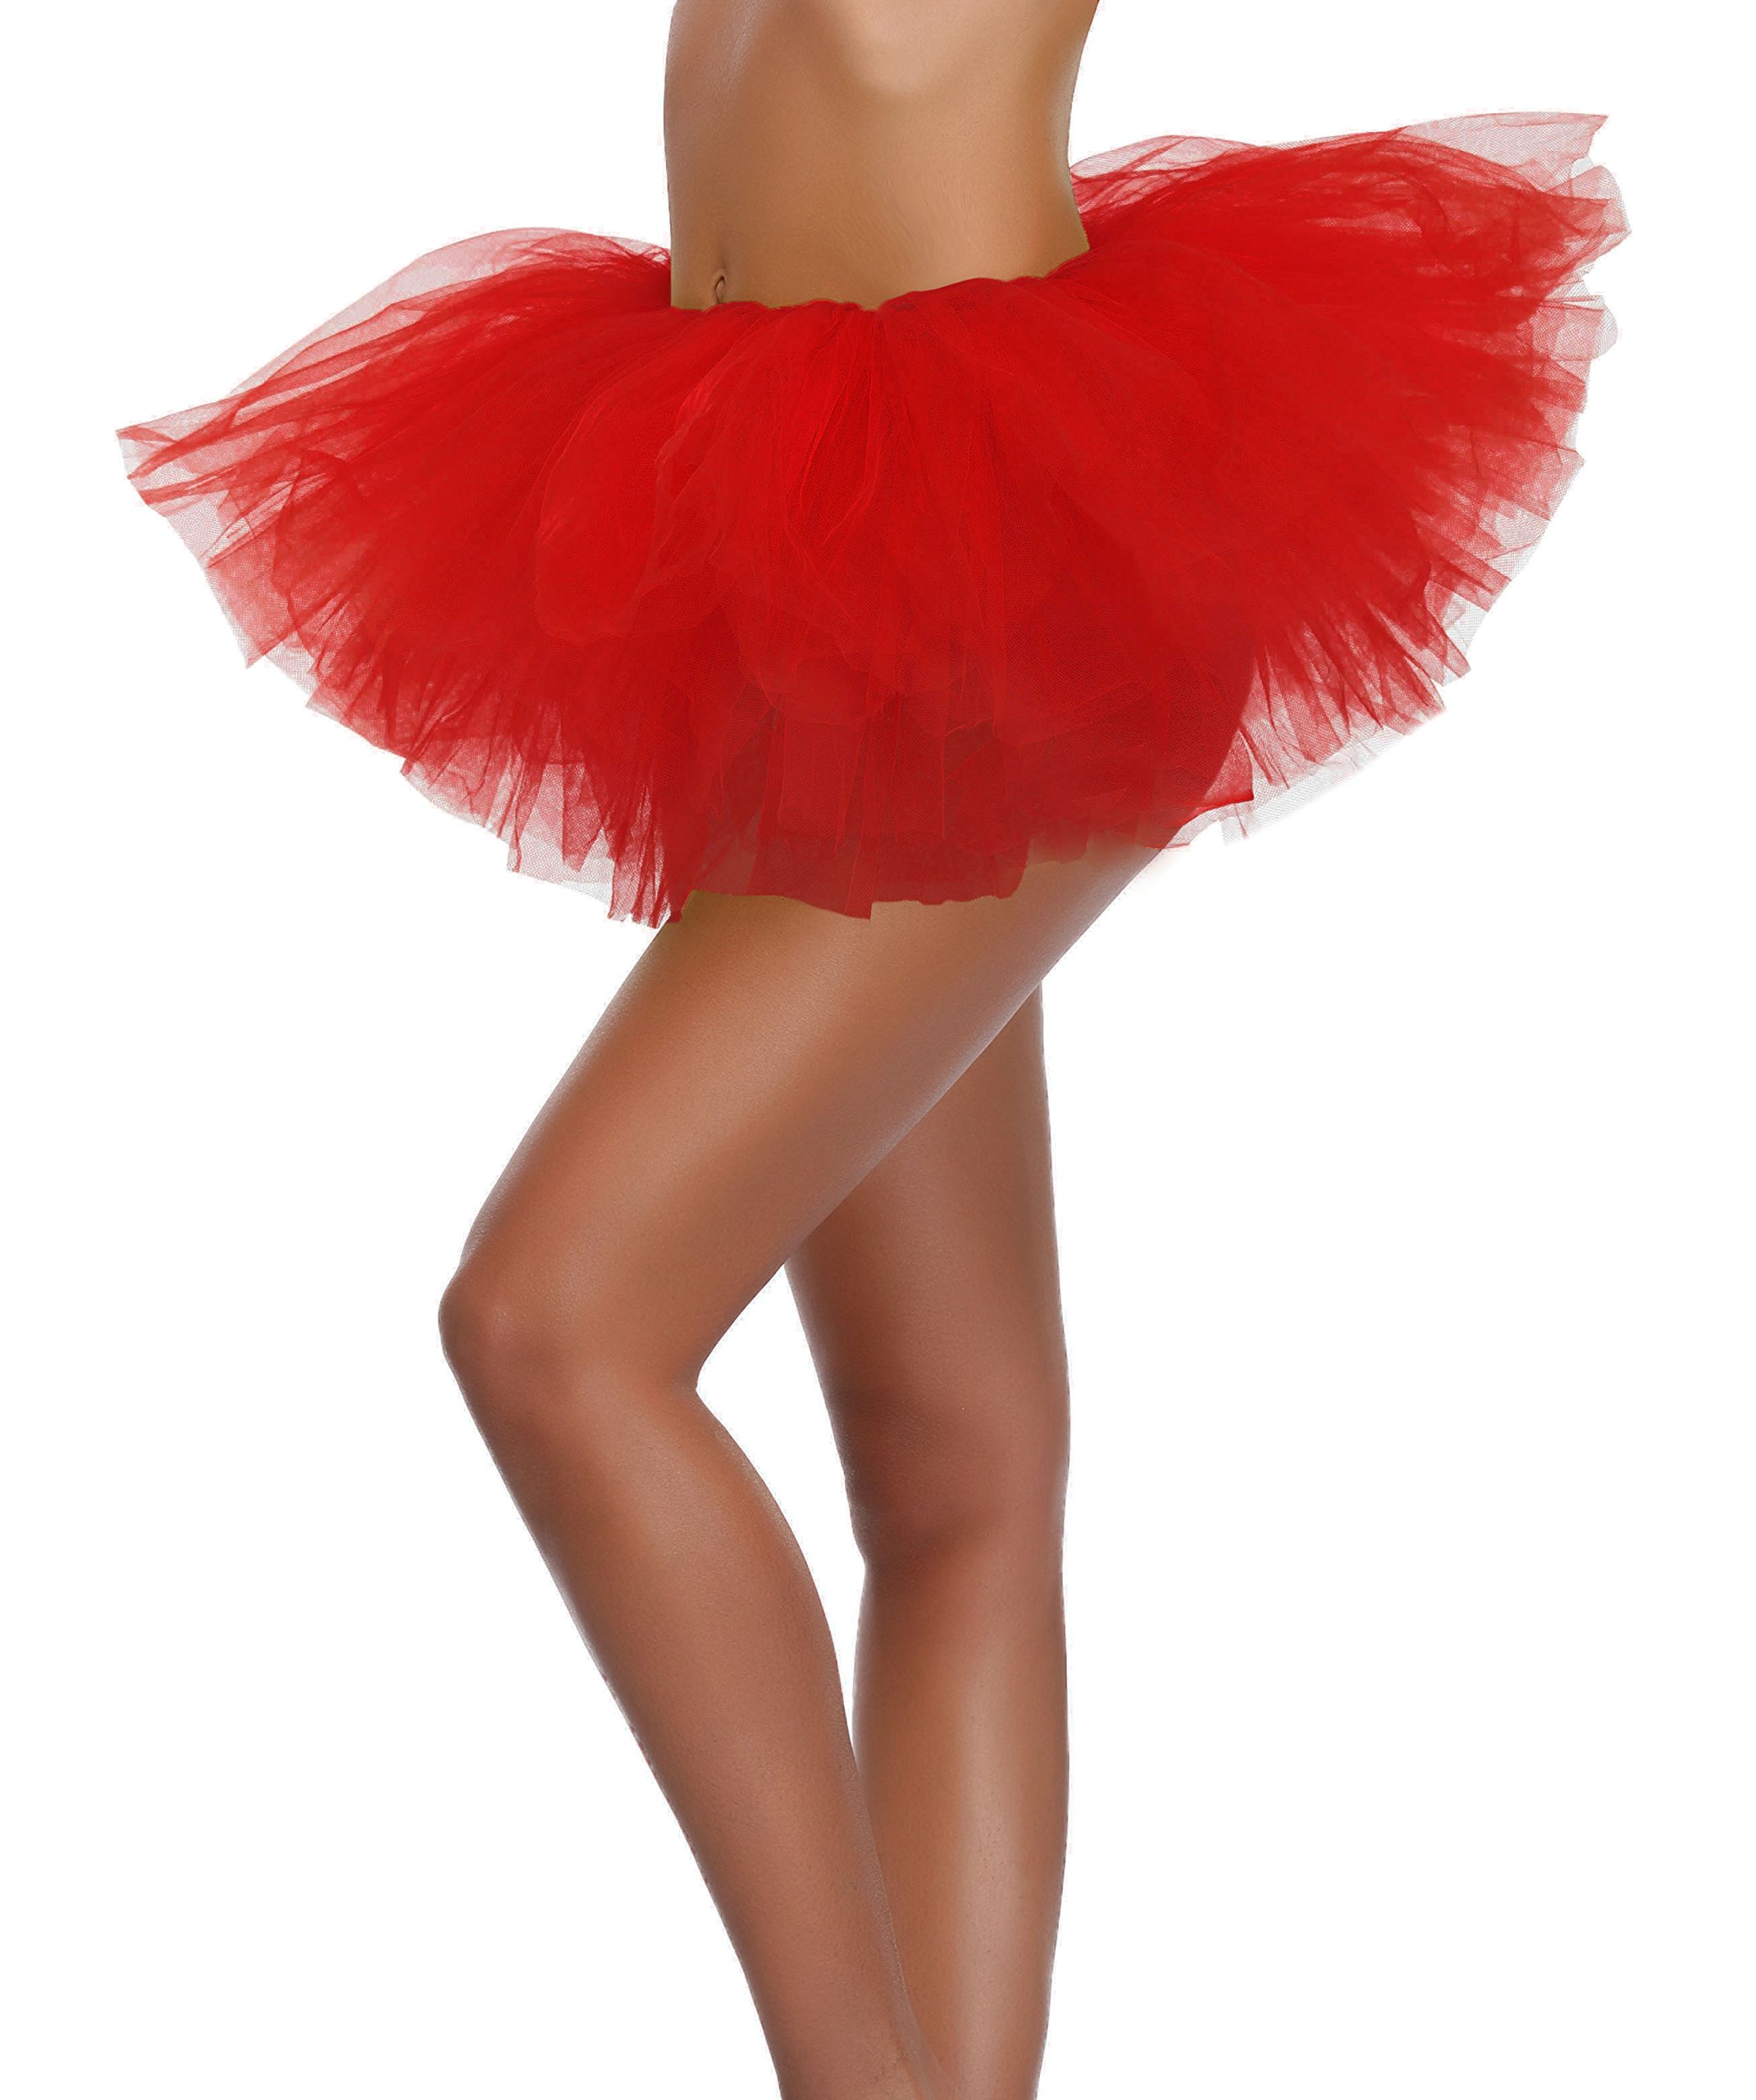 Women's, Teen, Adult Classic Elastic 3, 4, 5 Layered Tulle Tutu Skirt (One Size, Red 5Layer) by v28 (Image #3)